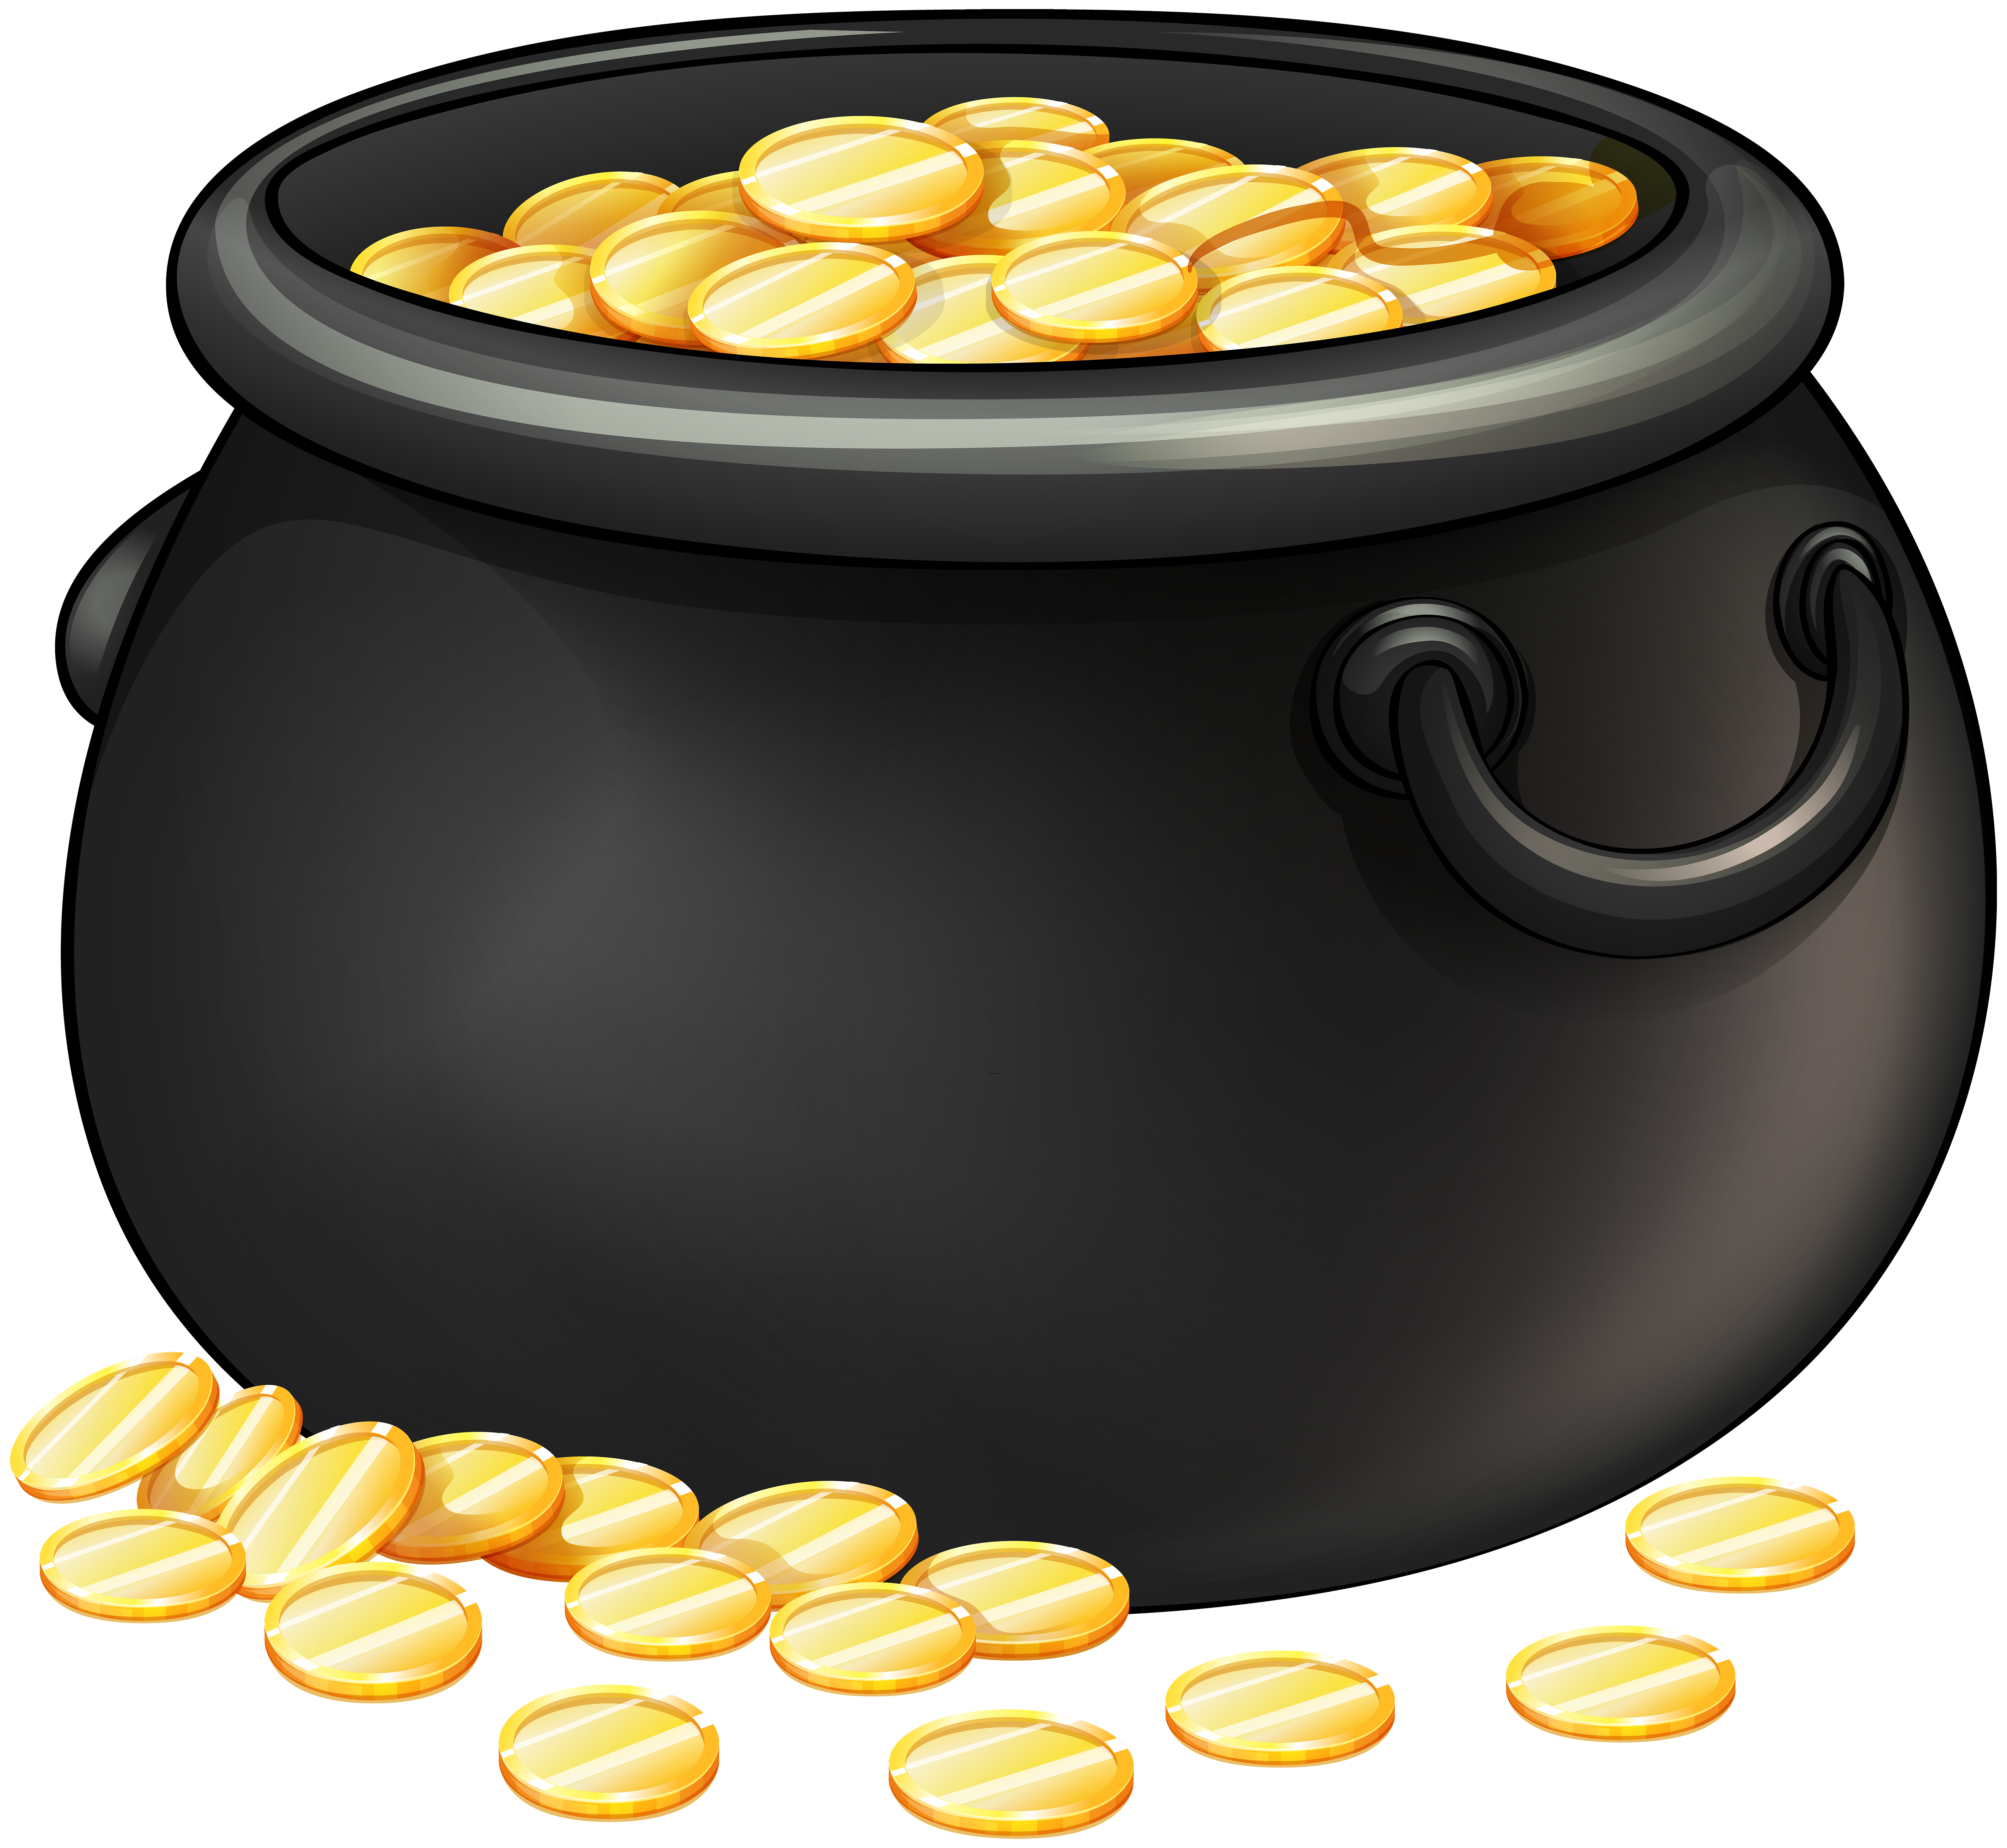 Money food clipart vector black and white download Black Pot of Gold PNG Clip Art | Gallery Yopriceville - High ... vector black and white download